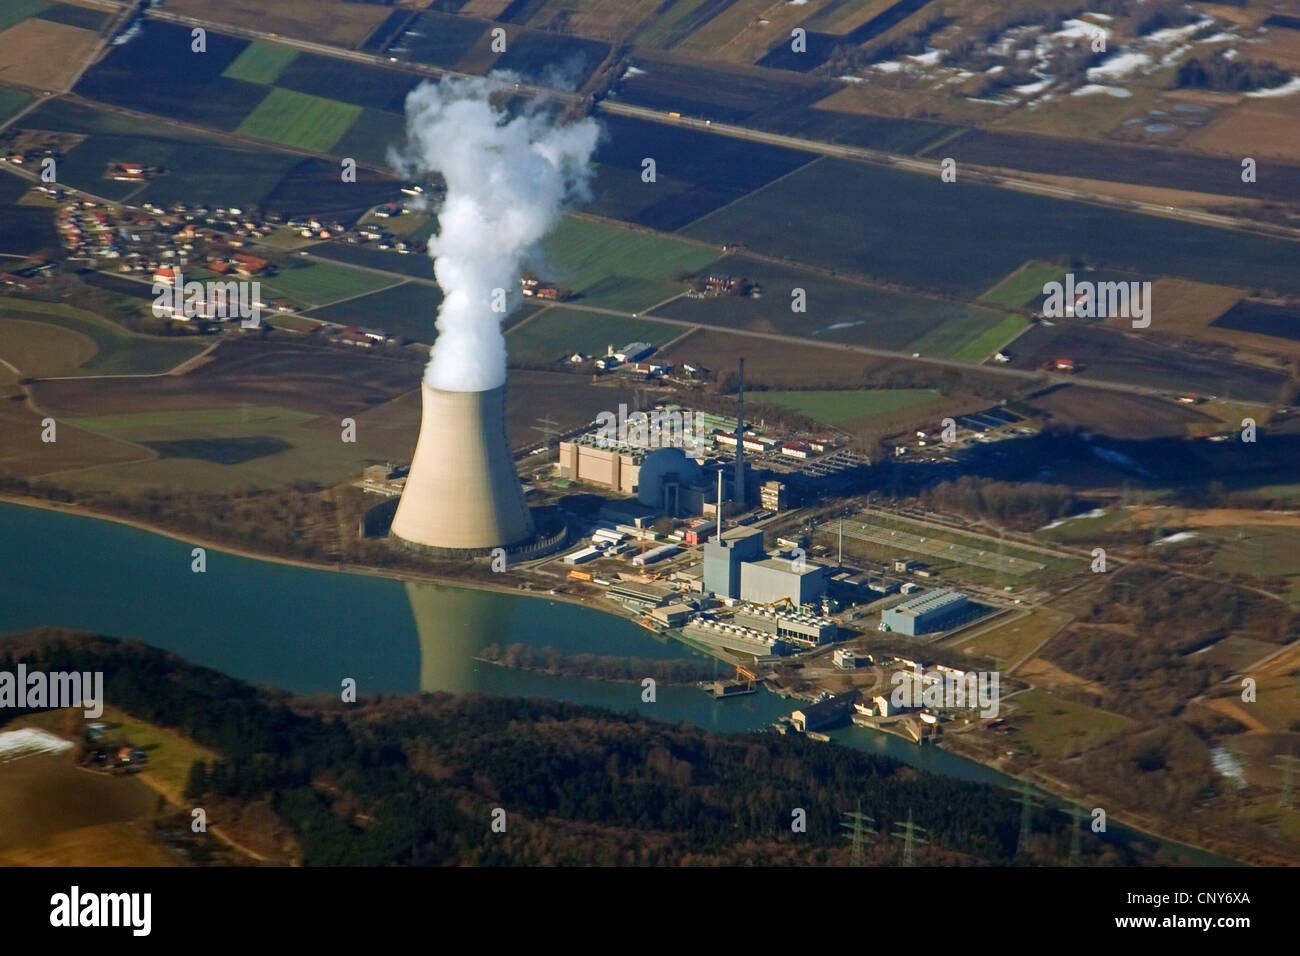 nuclear power station Isar, Germany, Bavaria - Stock Image